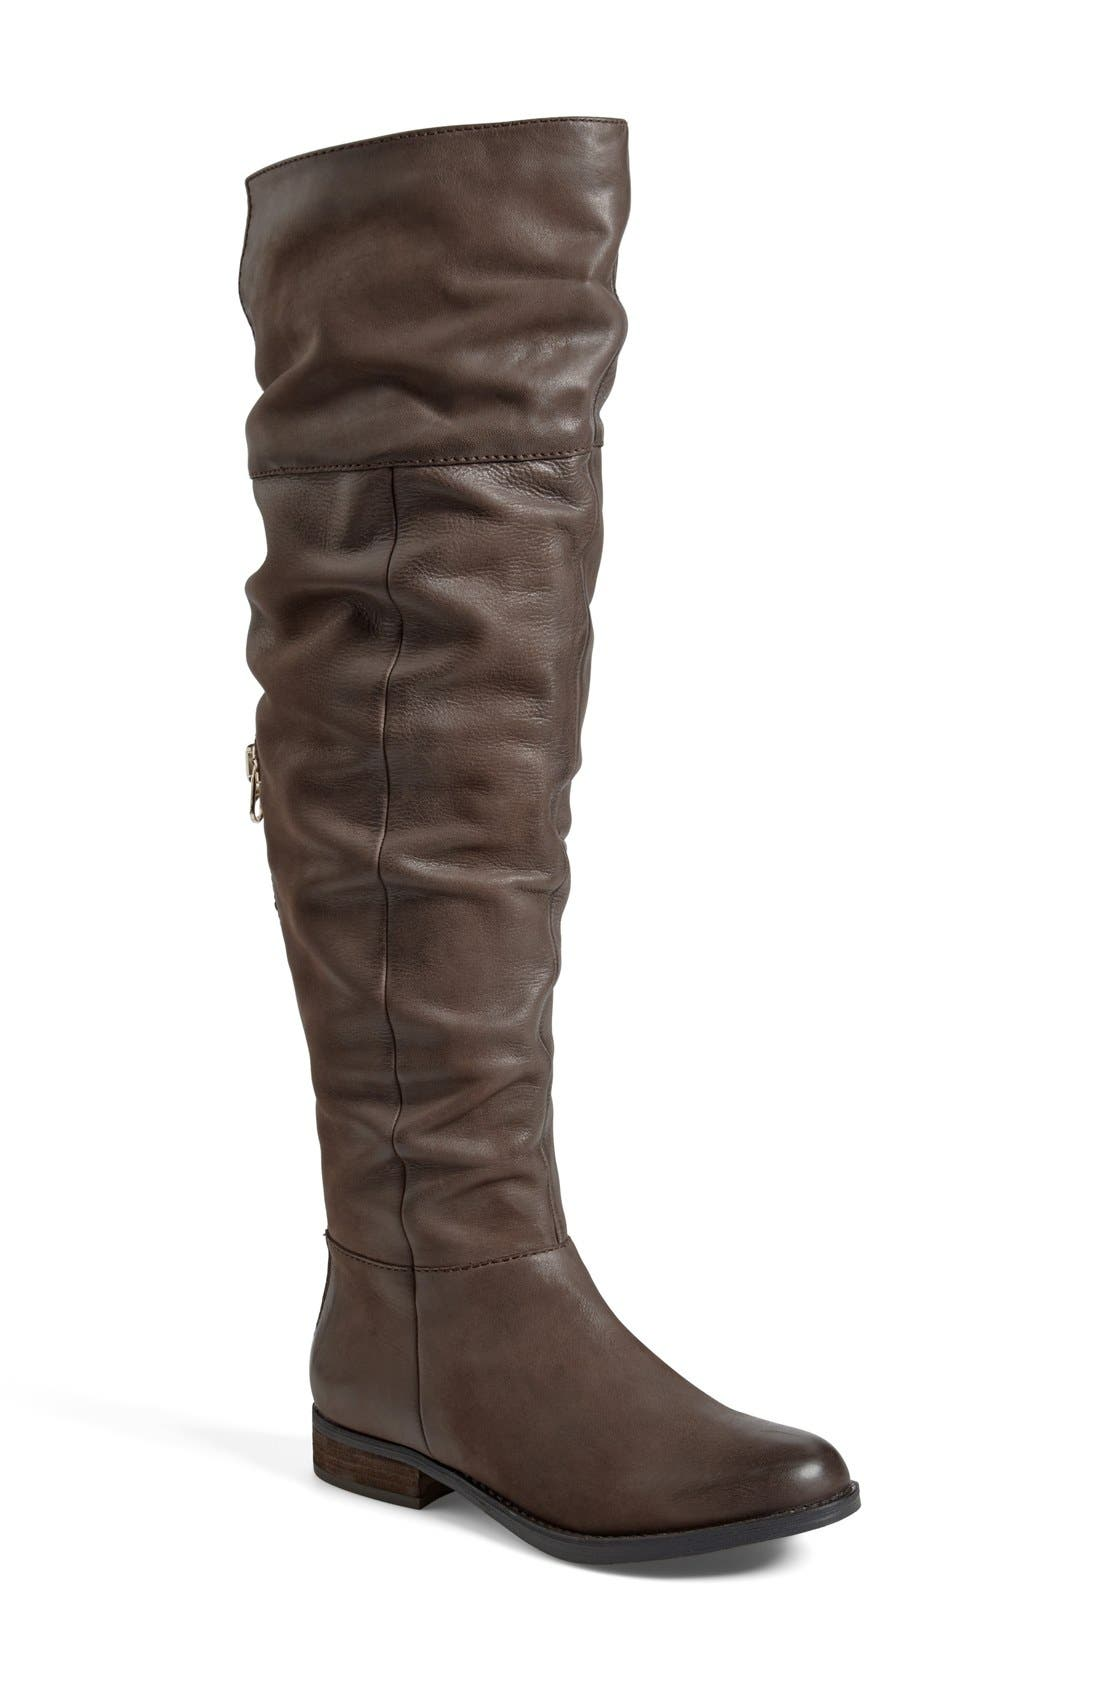 'Heisnbrg' Leather Over the Knee Boot,                         Main,                         color, Brown Leather